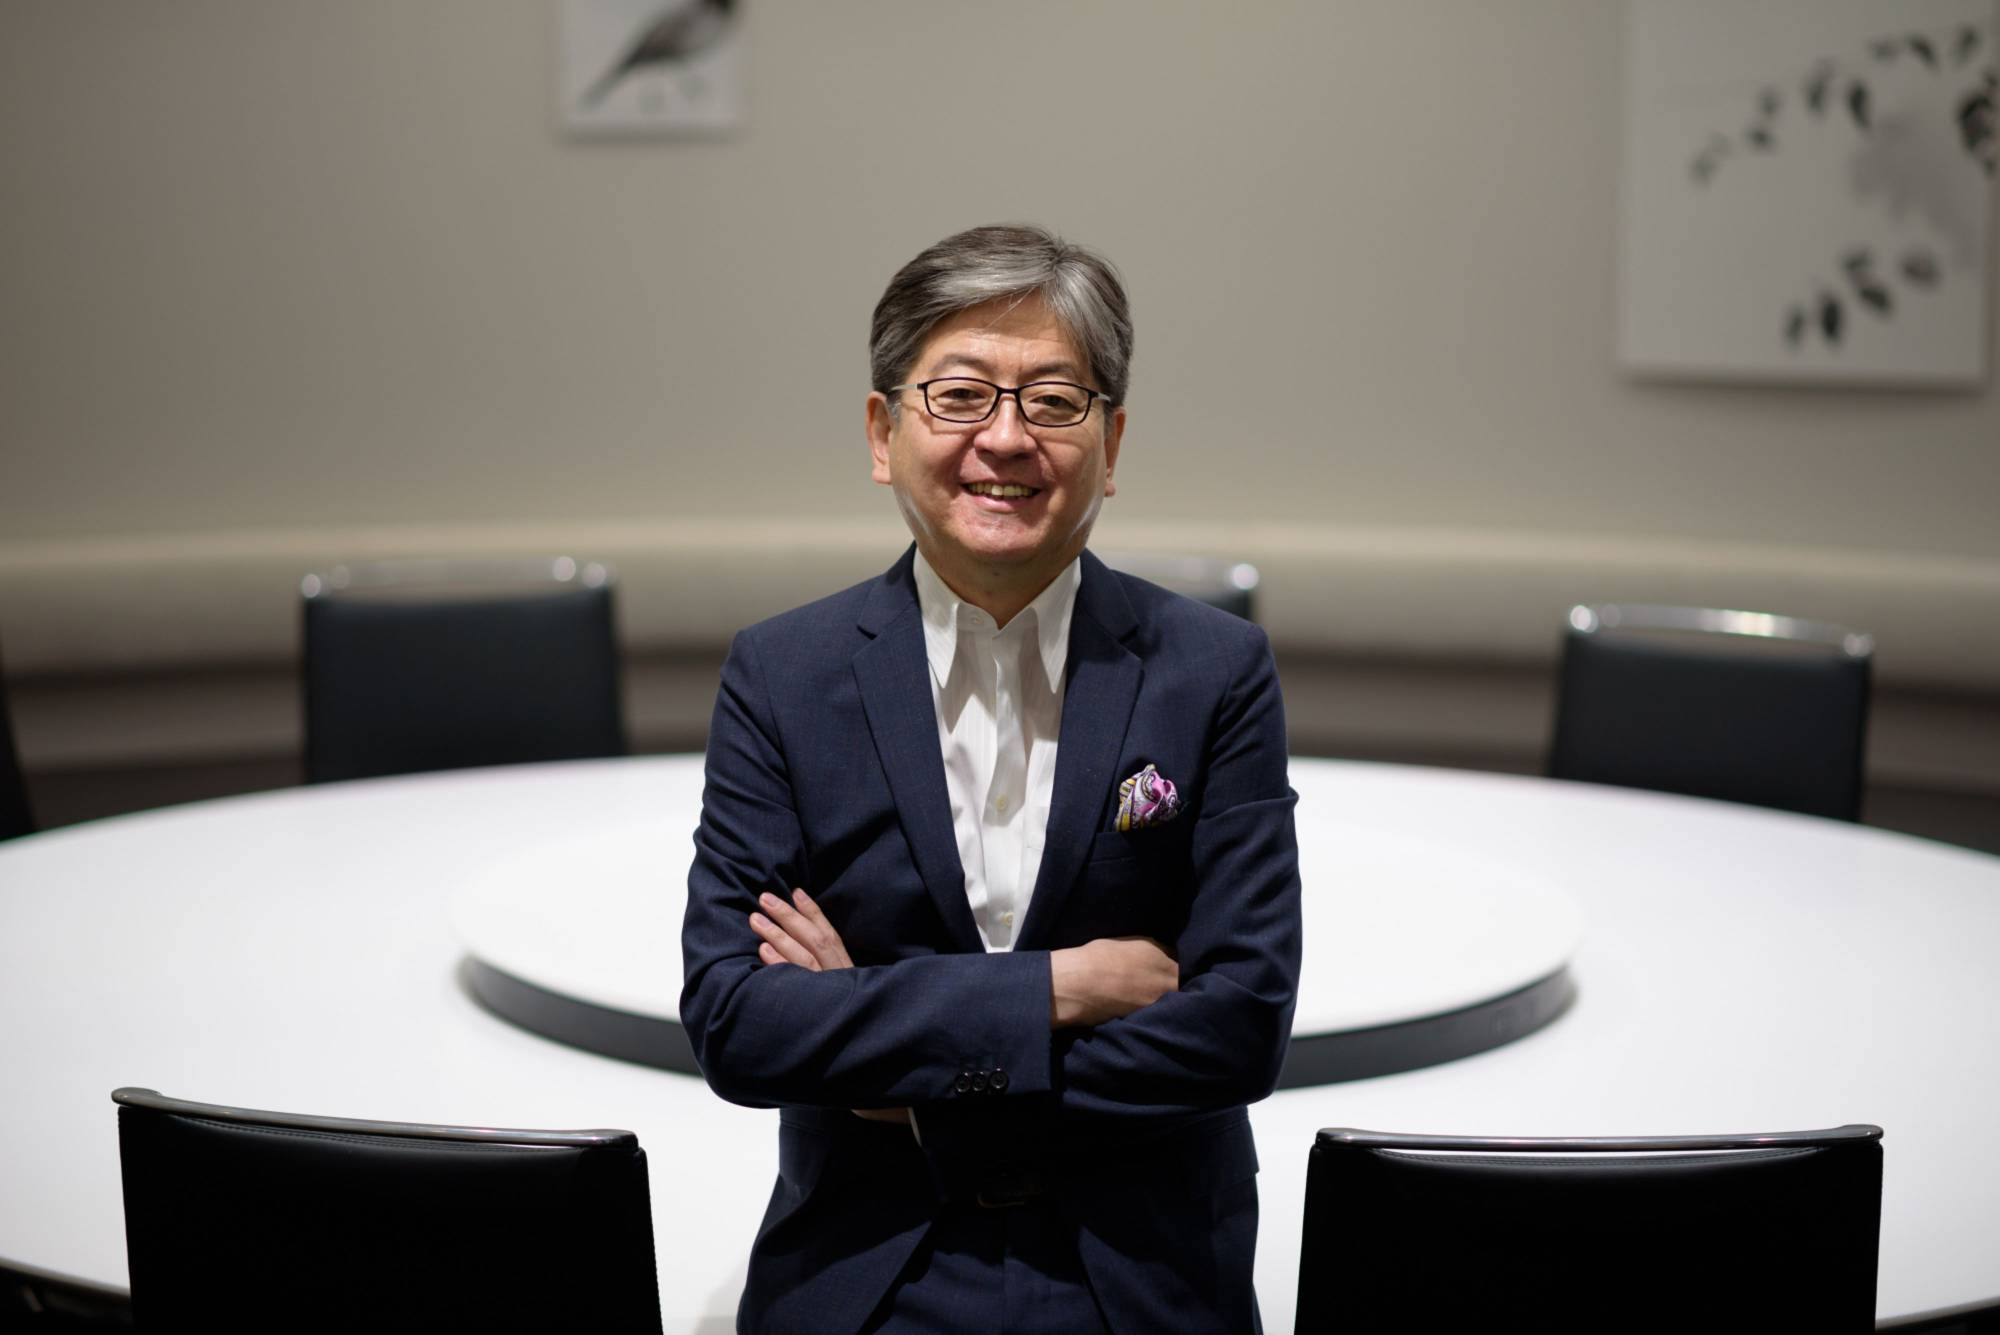 Oki Matsumoto, chief executive officer of Monex Group Inc., poses for a photograph in Tokyo in May 2018. Monex has been diversifying into cryptocurrency as intensifying competition dims prospects of its mainstay stock brokerage business. | BLOOMBERG